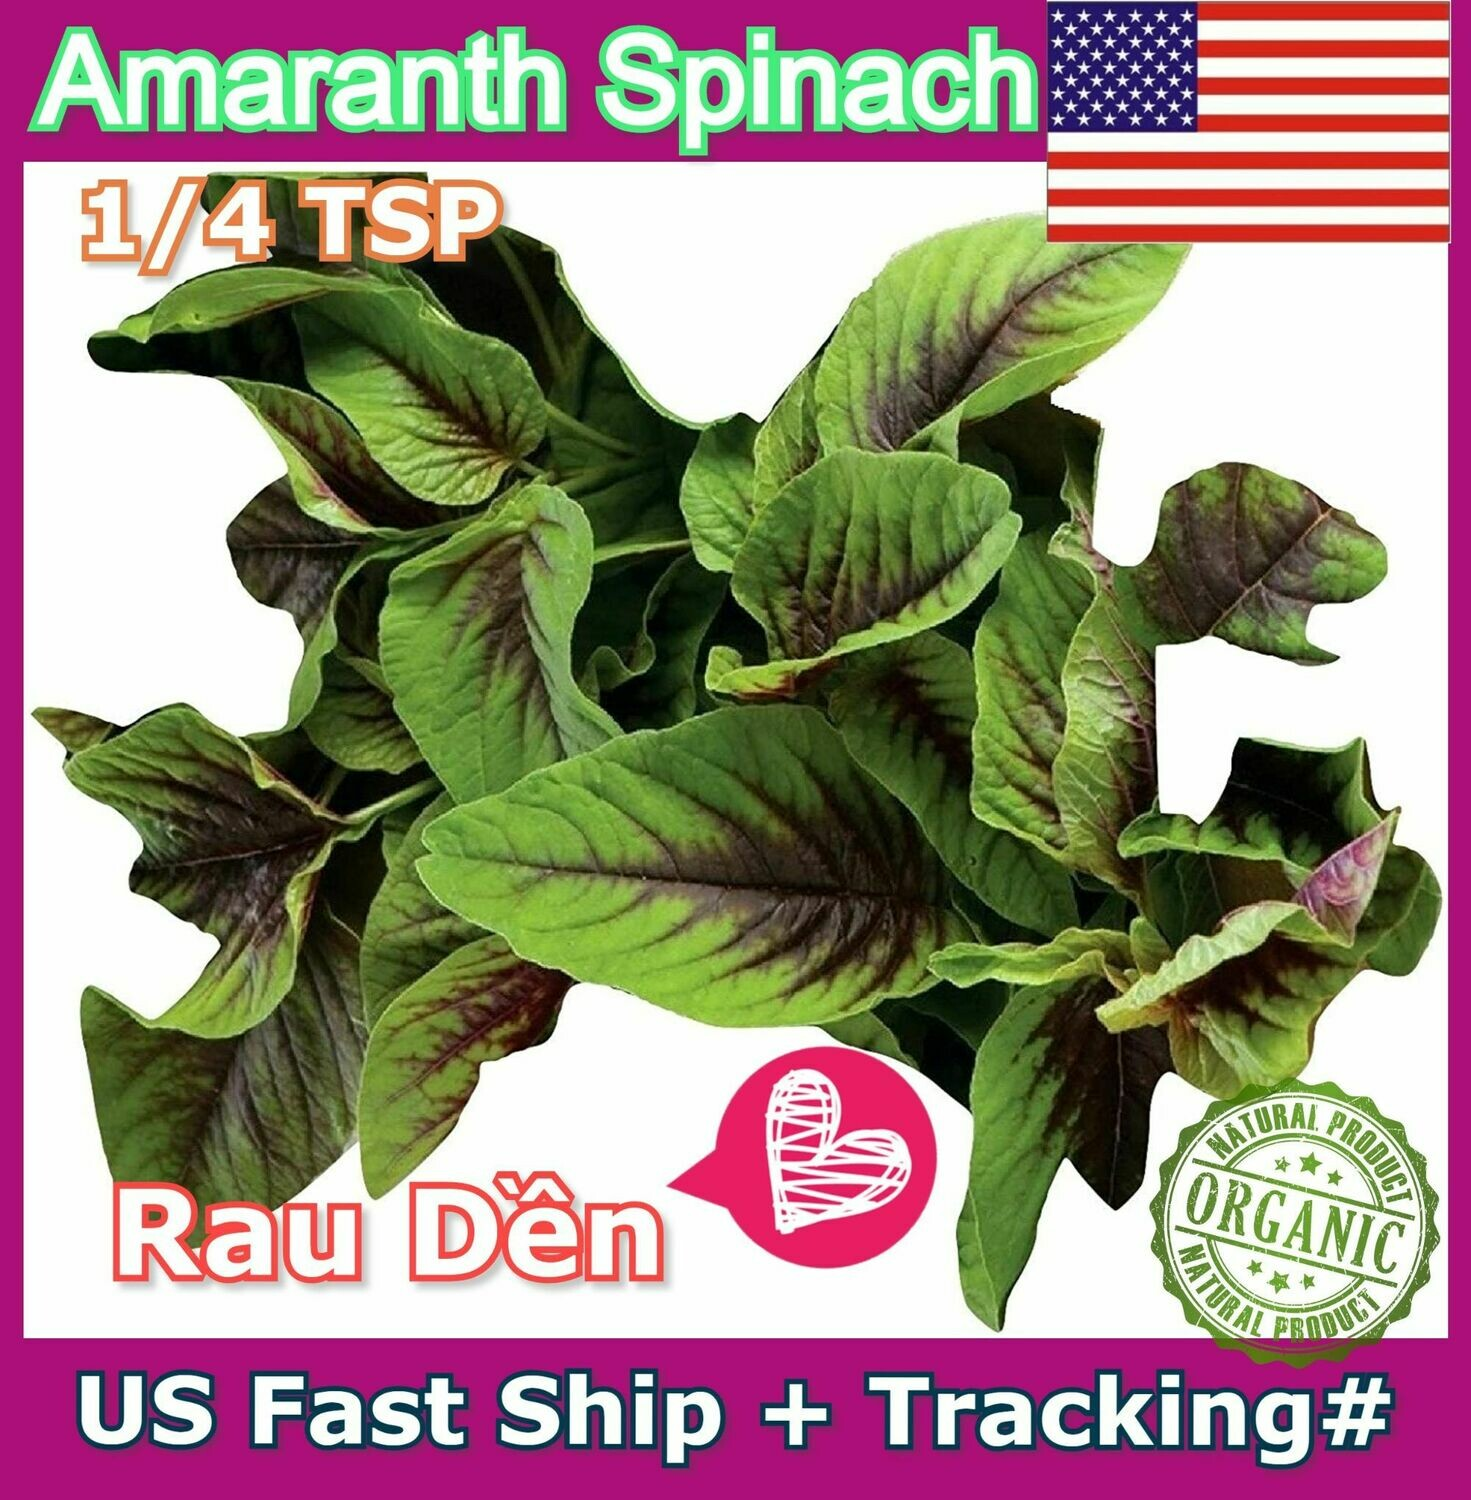 Amaranth Spinach hat Rau Den